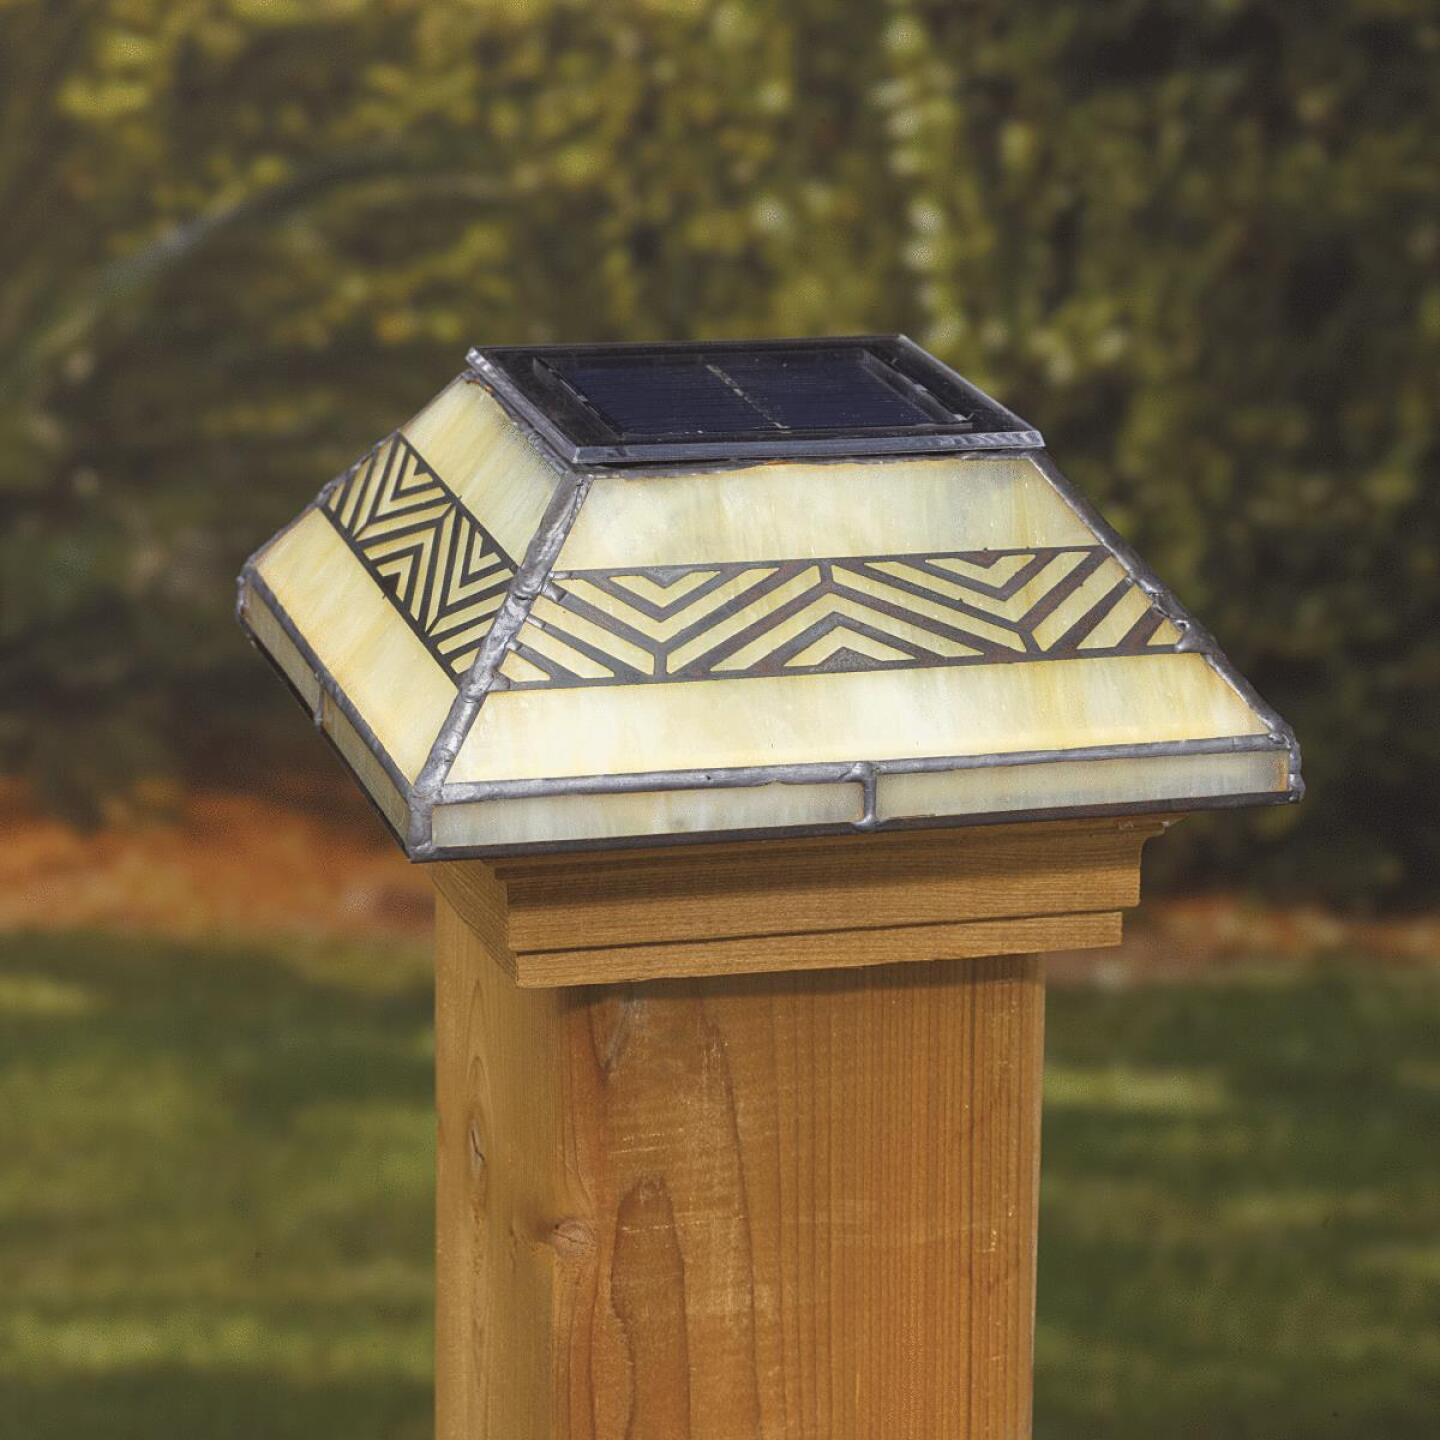 Deckorators 4 In. x 4 In. Frosted Glass Filigreed Solar Post Cap Image 2